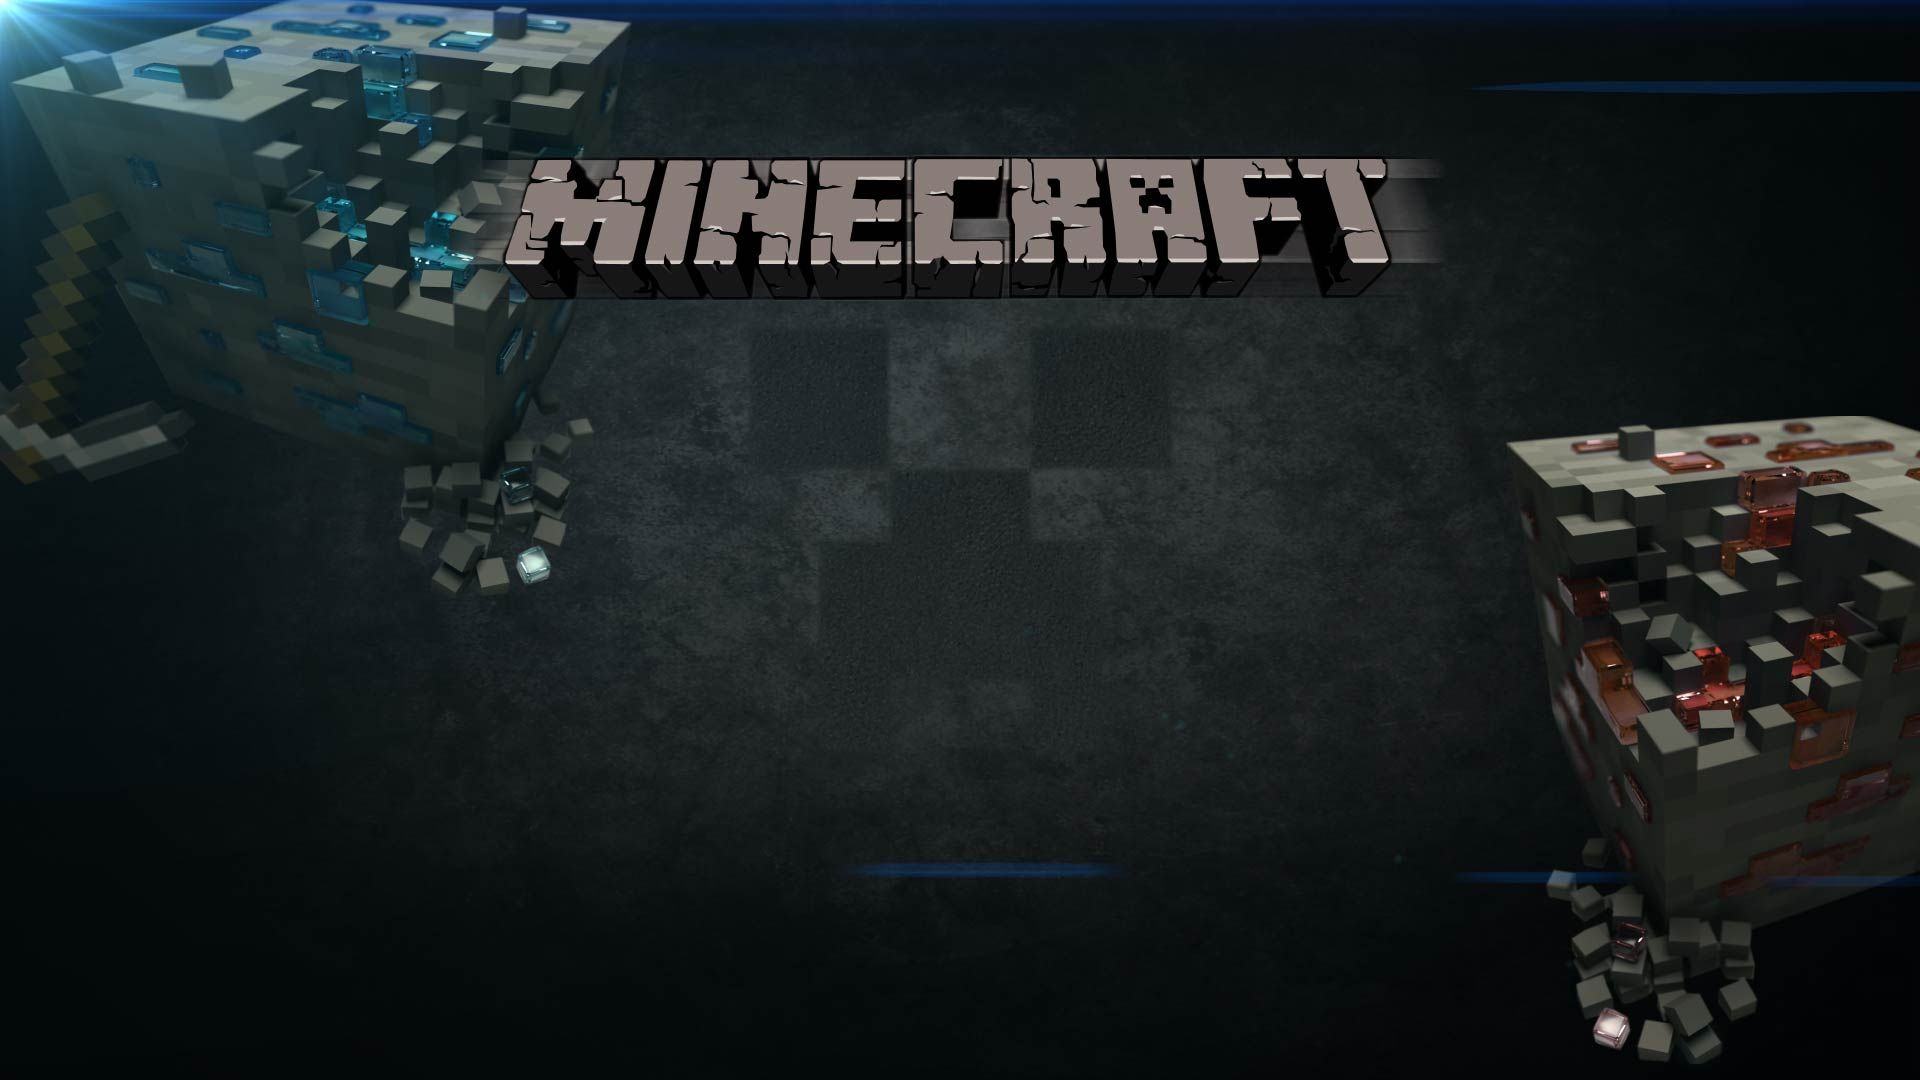 Amazing Wallpaper Minecraft 1080p - 4d89cd27da2483ee1956e8c95e9fc09c  You Should Have_934072.jpg